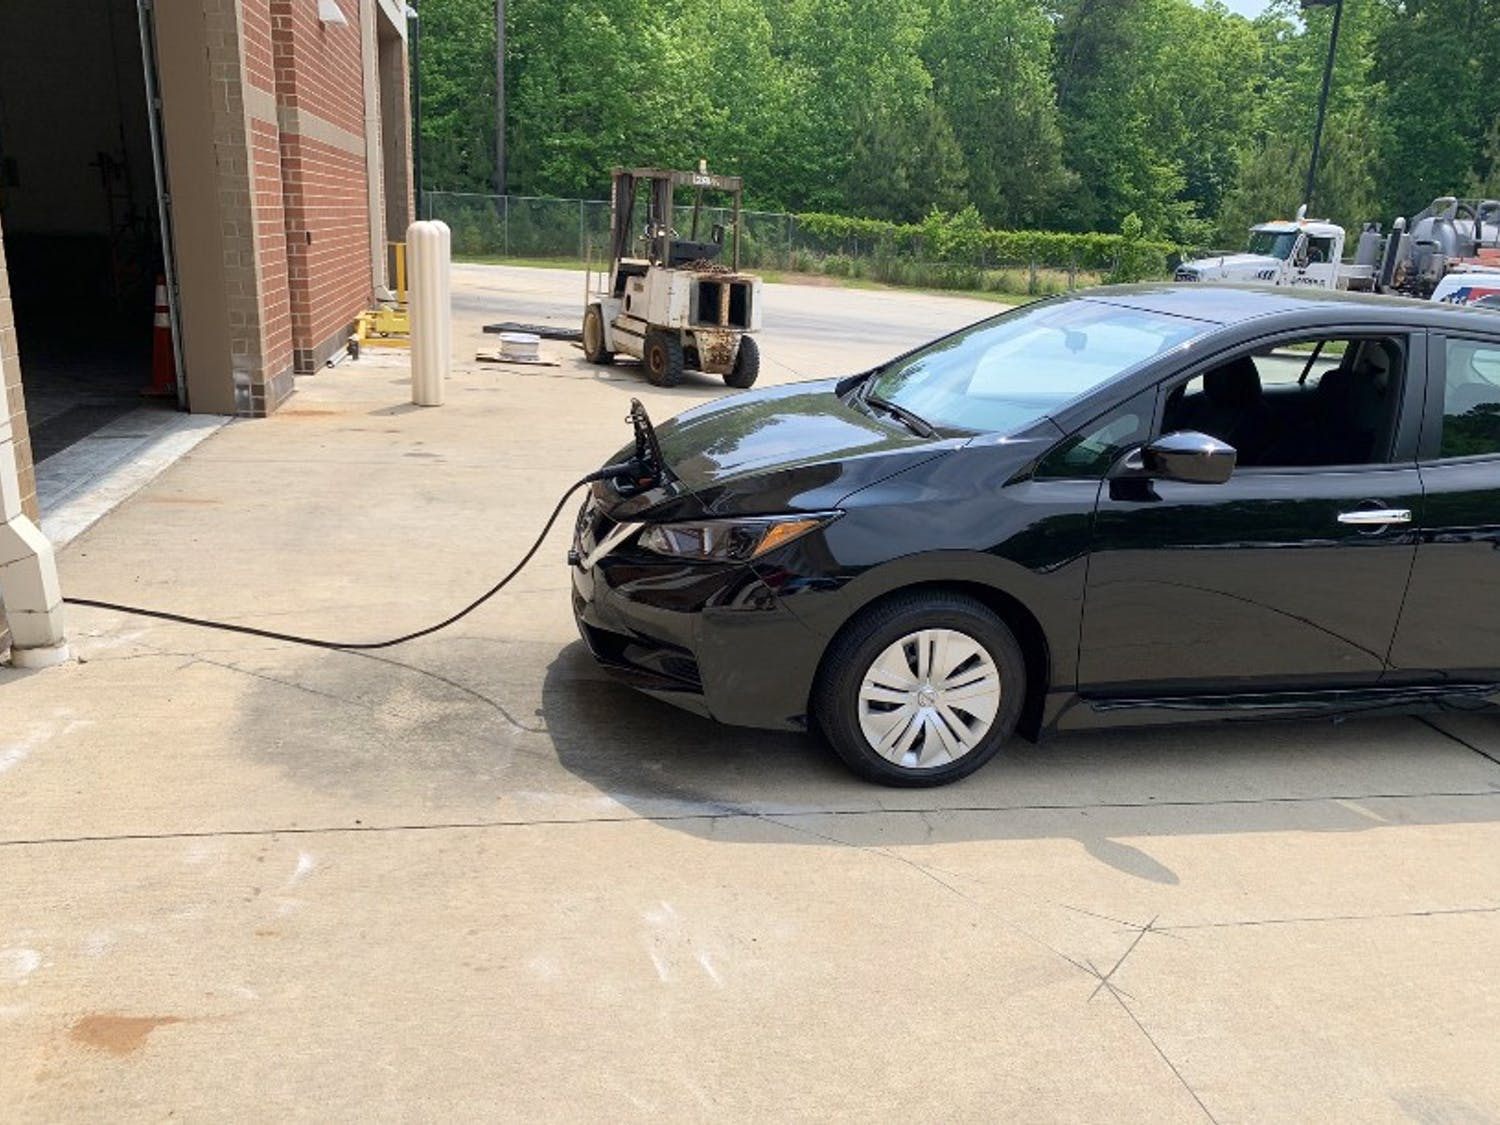 One of the electric cars that is set to be joining Chapel Hill Transit's fleet is charging. Photo courtesy of Brian M. Litchfield.